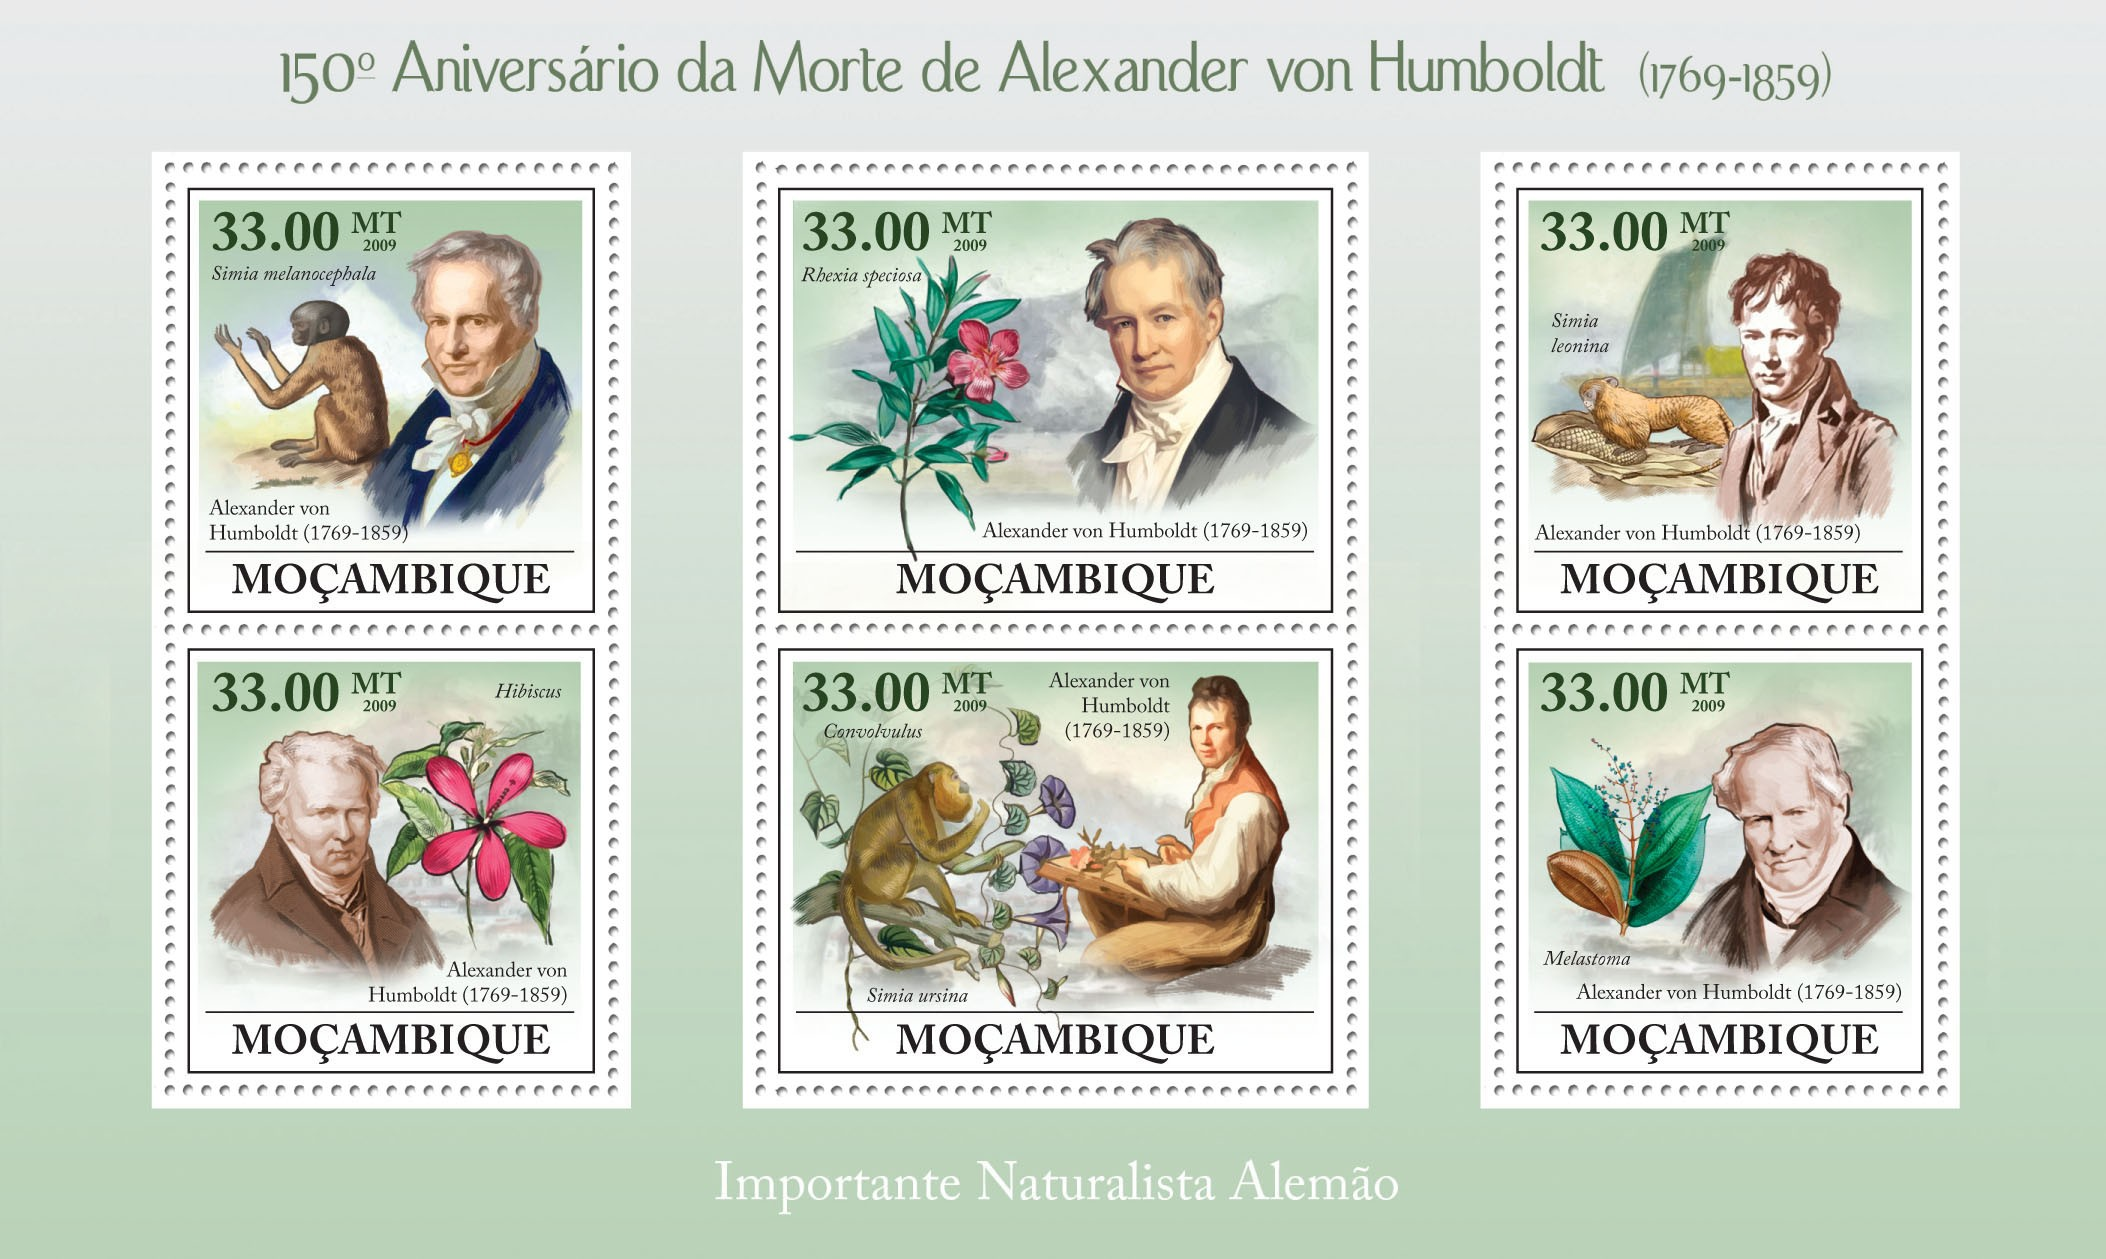 150th Anniversary of Death of Alexander von Humboldt (1769-1859) - Issue of Mozambique postage Stamps